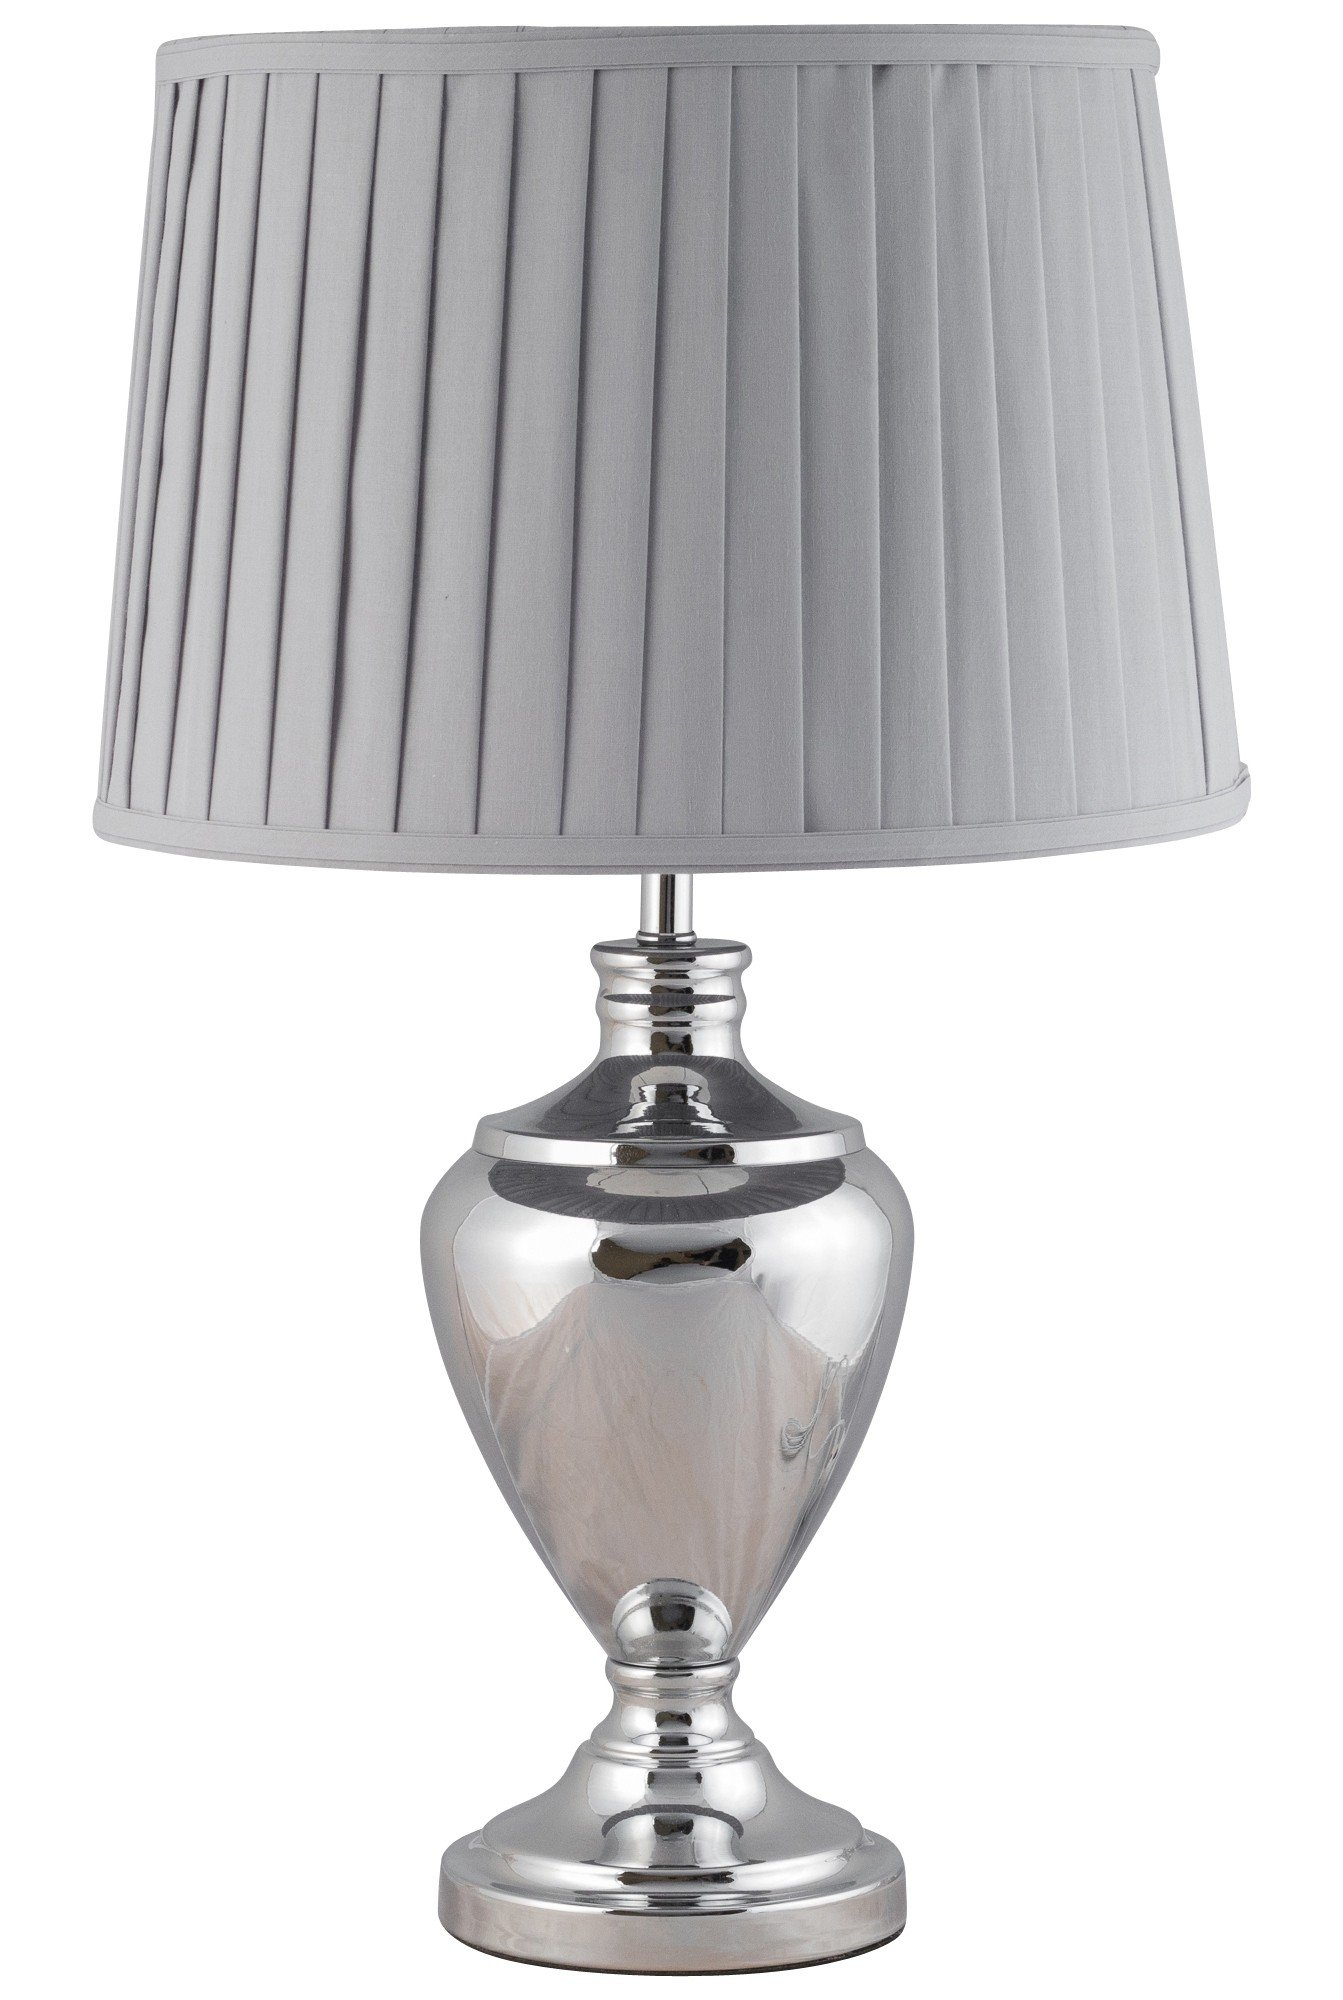 58cm Urn Style Table Lamp In Polished Chrome With Grey